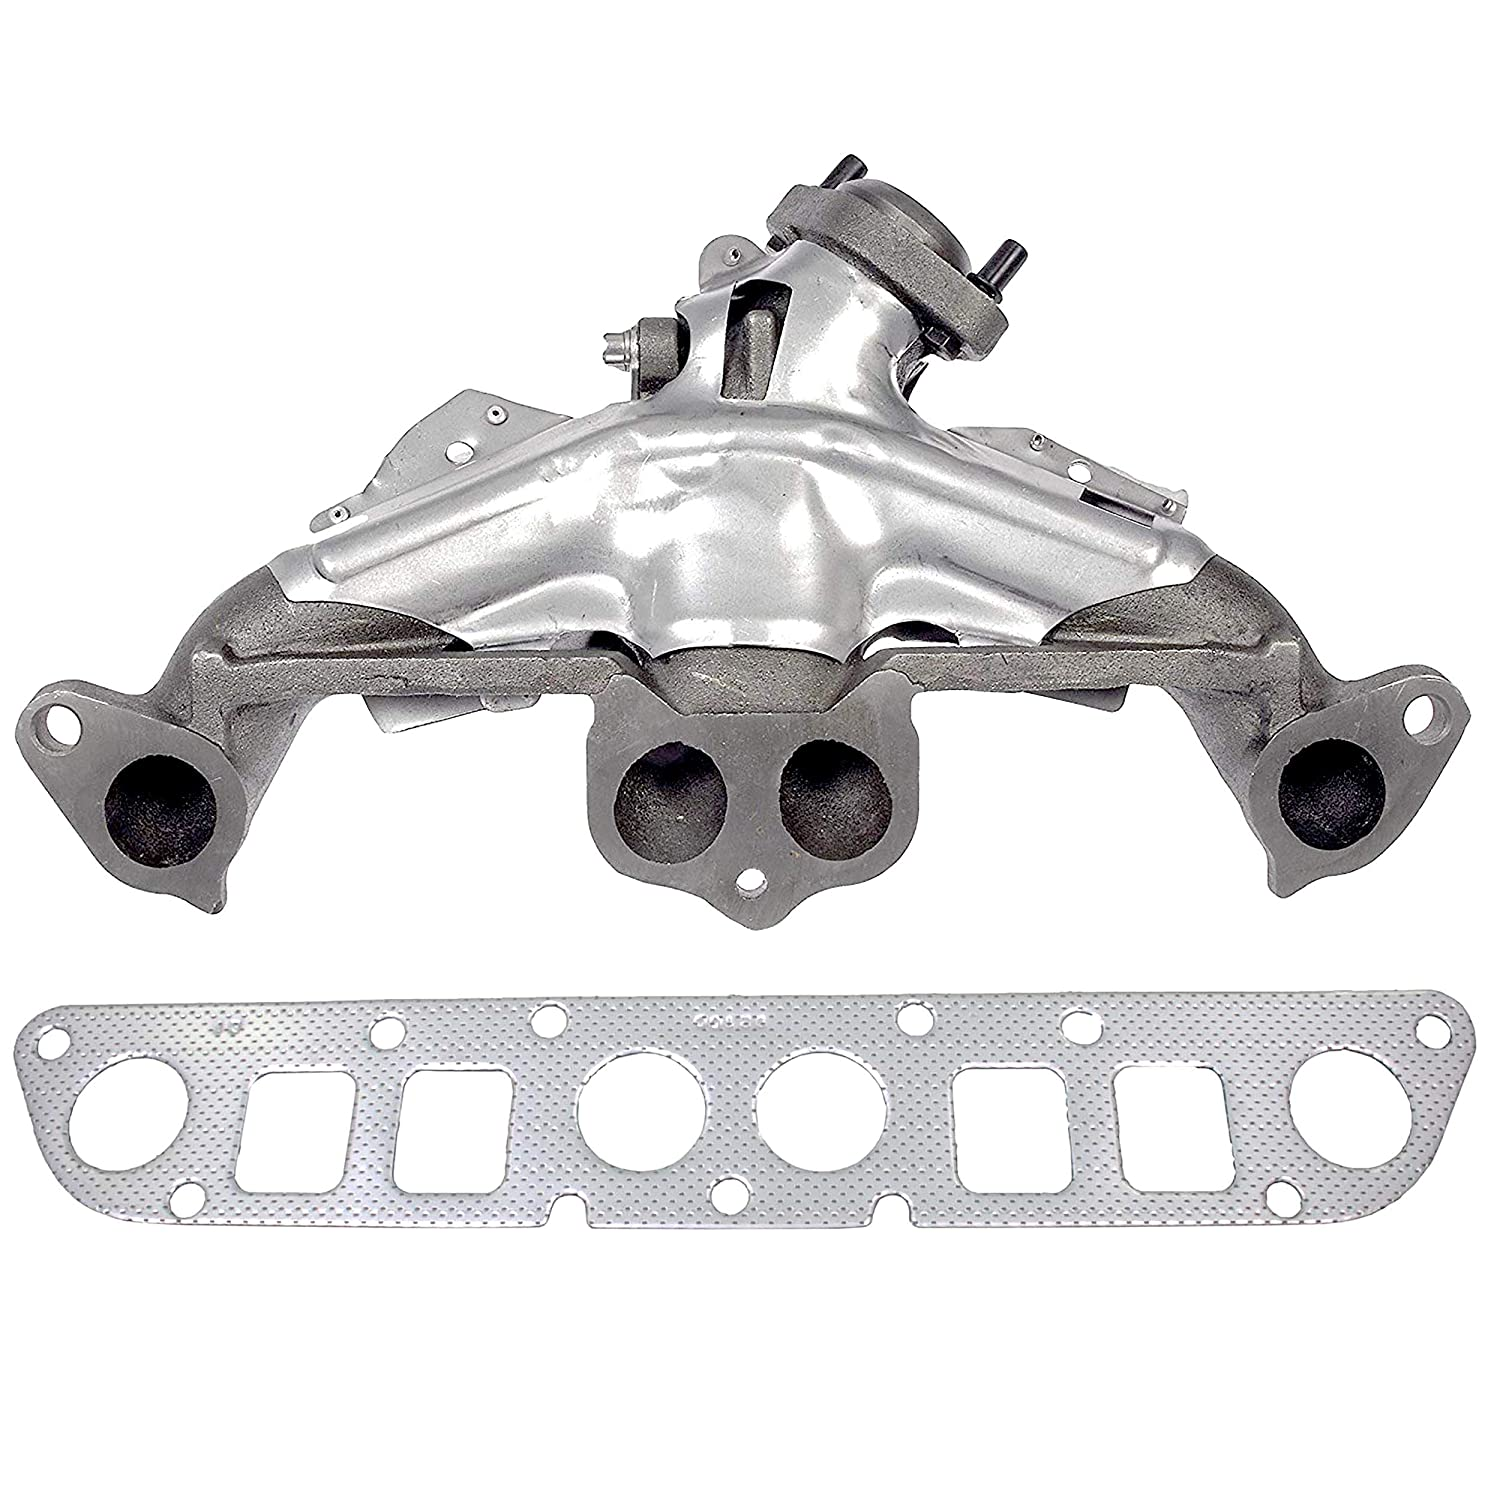 Jeep Comanche Exhaust System Gasket Apdty Manifold Heat Shield Fits Cylinder Engine On Dodge Dakota Cherokee 1500x1500